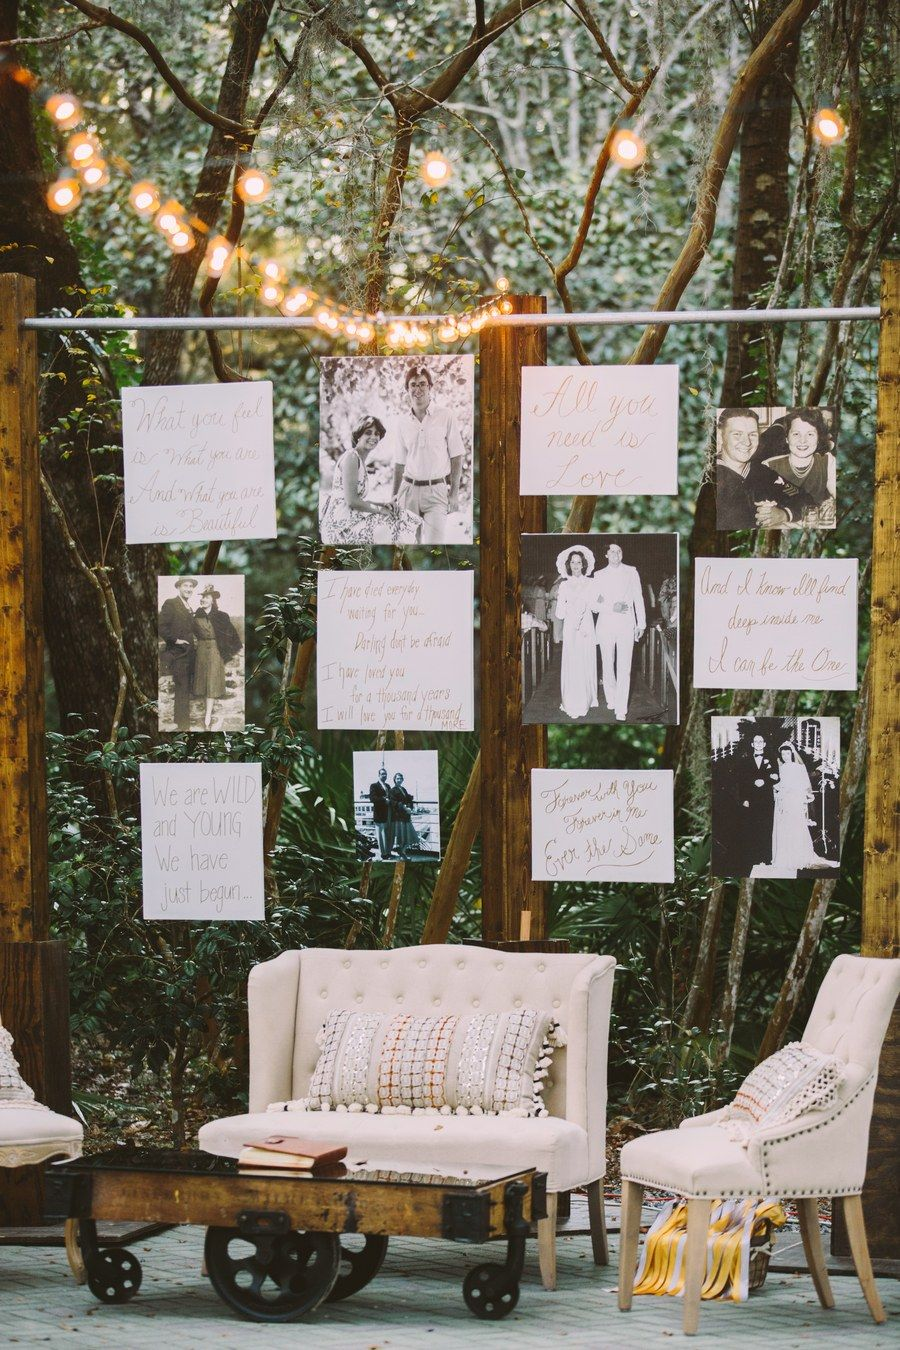 Wedding decorations to make   Ways to Make Your Rehearsal Dinner as Memorable as the Wedding